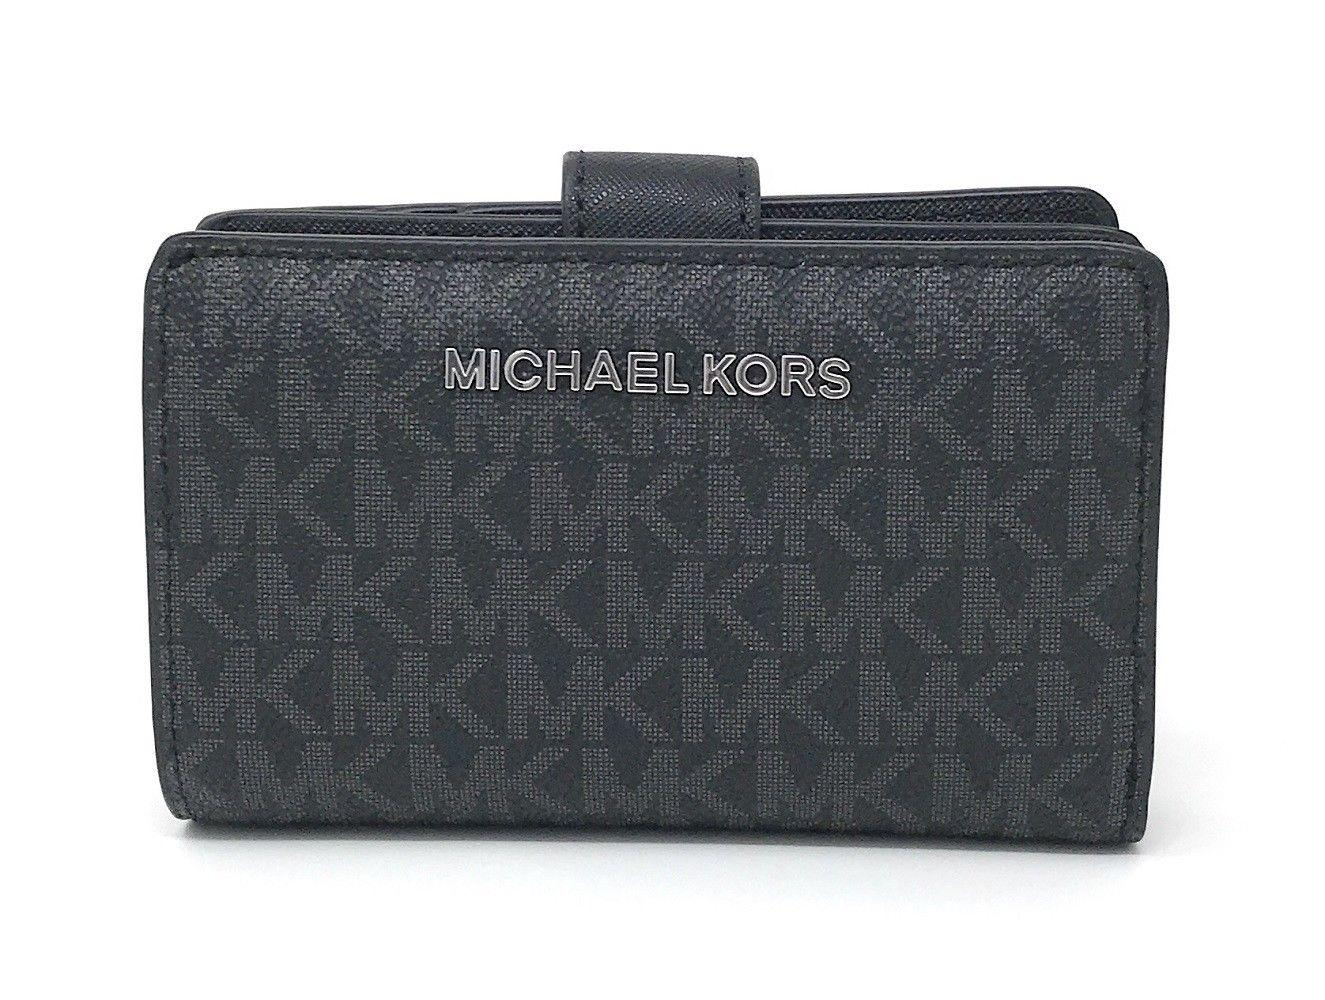 8a5b1a8cee5b Authentic Michael Kors Jet Set Travel Bifold Zip Coin Wallet Style no   35F8GTVF2B